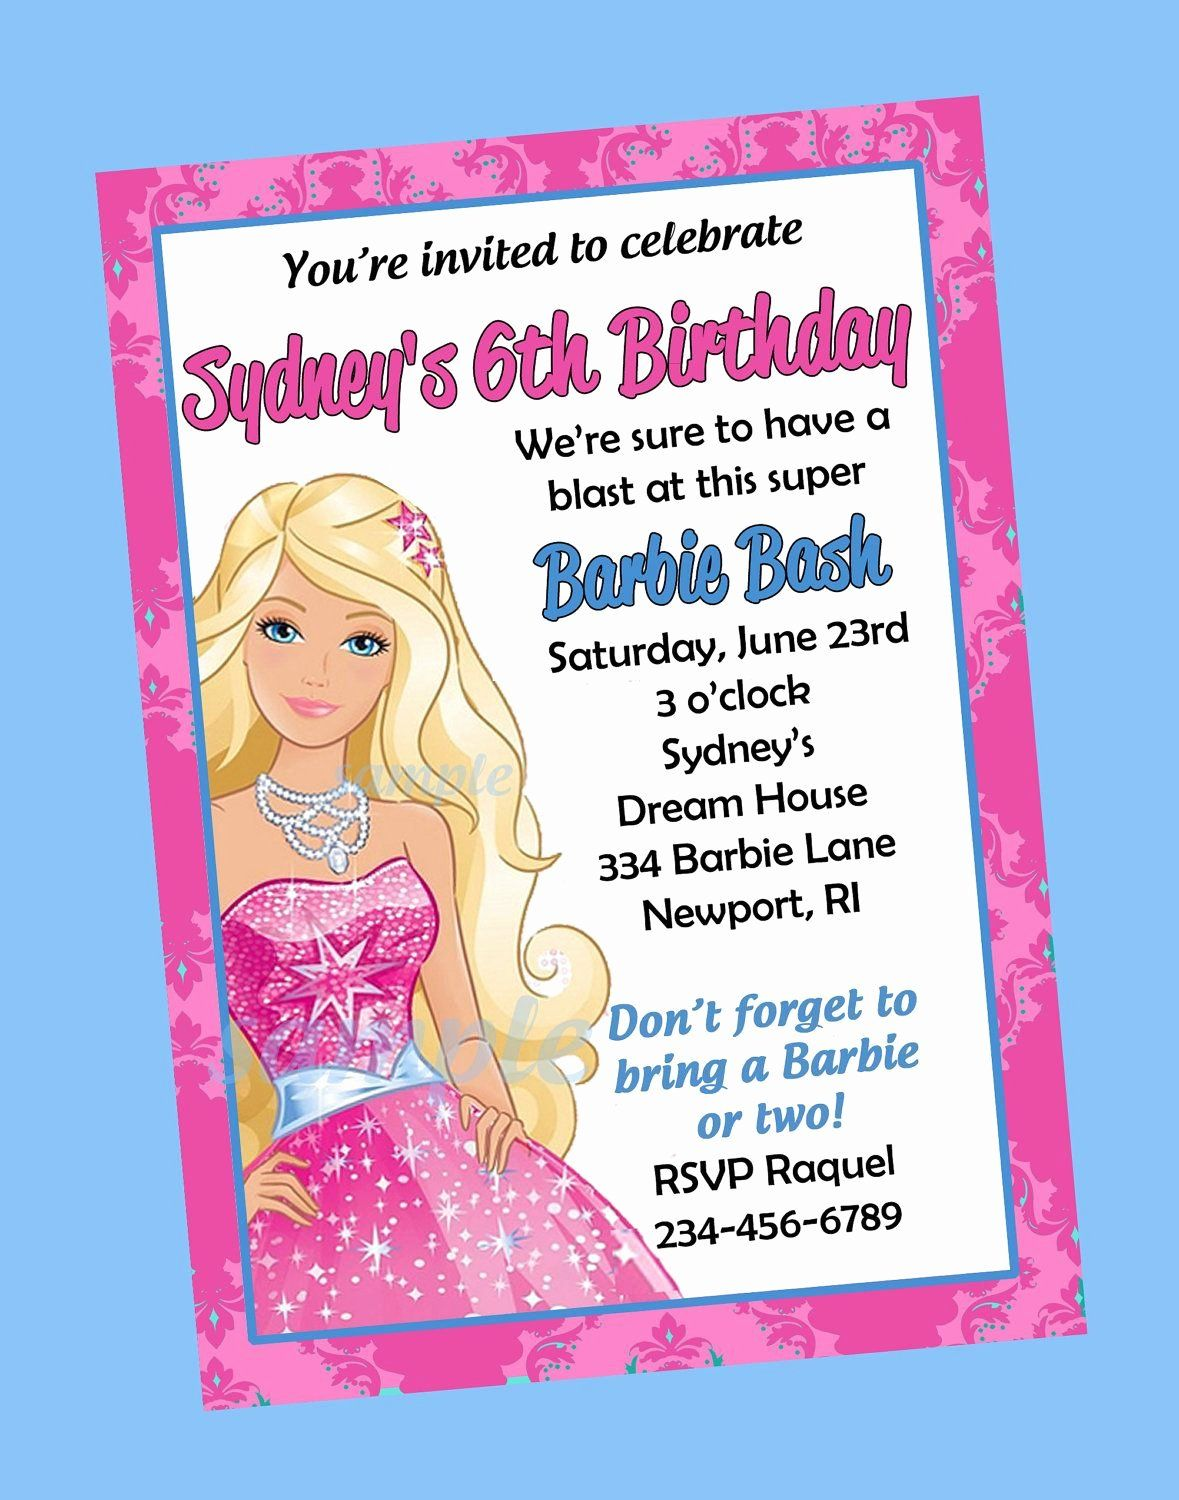 7th Birthday Party Invitation Wording New Free Print Barbie Invitations Barbie Invitations Barbie Birthday Party Barbie Birthday Invitations